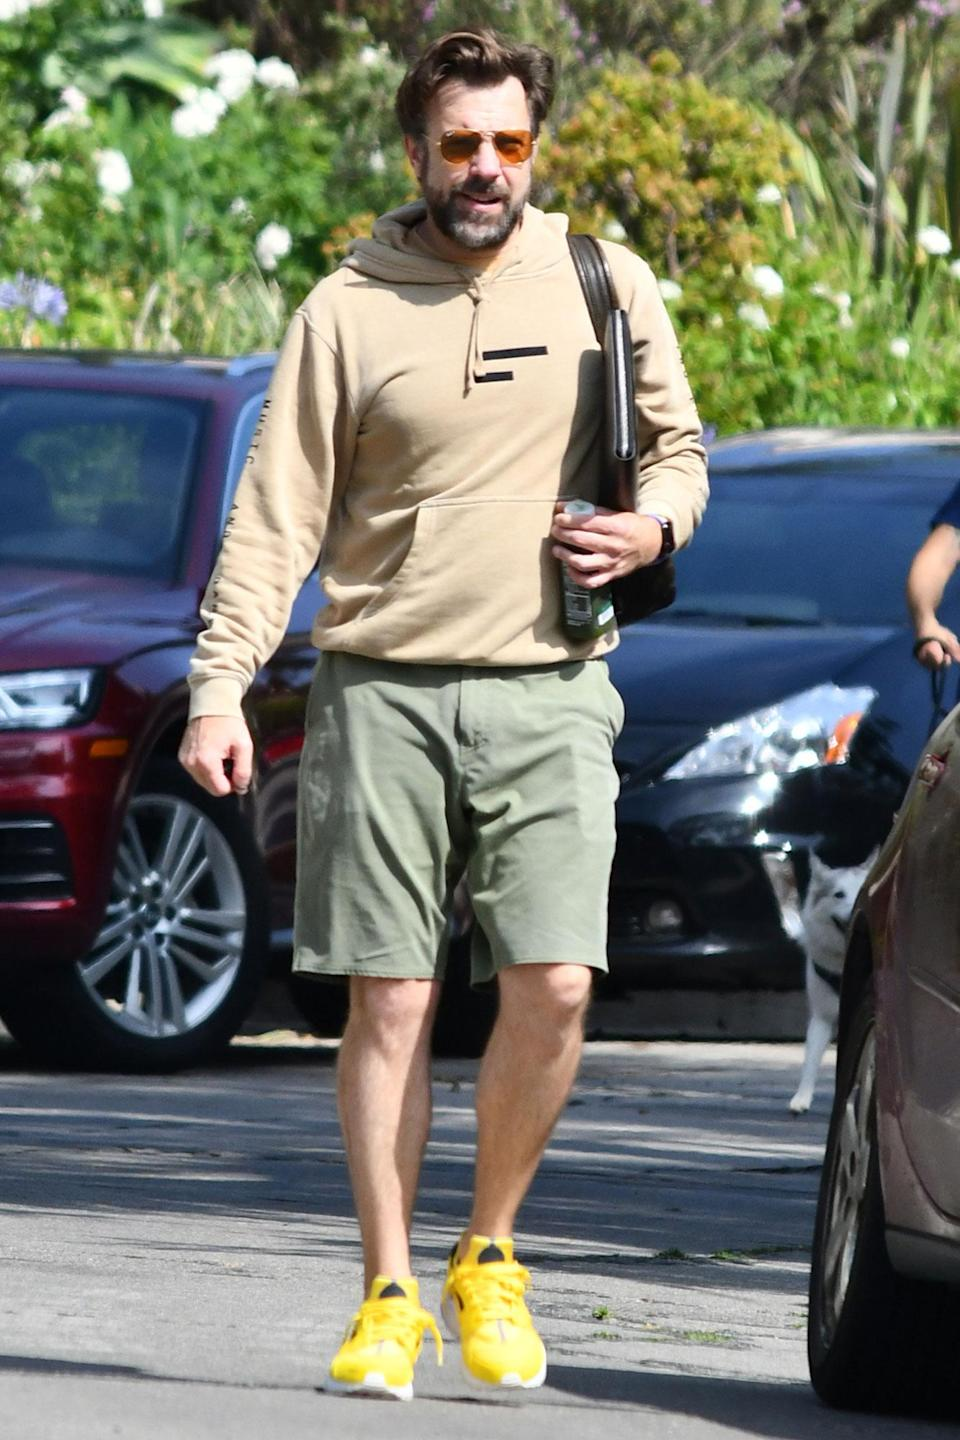 <p>Jason Sudeikis steps in Los Angeles on Friday for an outing with longtime partner Olivia Wilde (not pictured).</p>